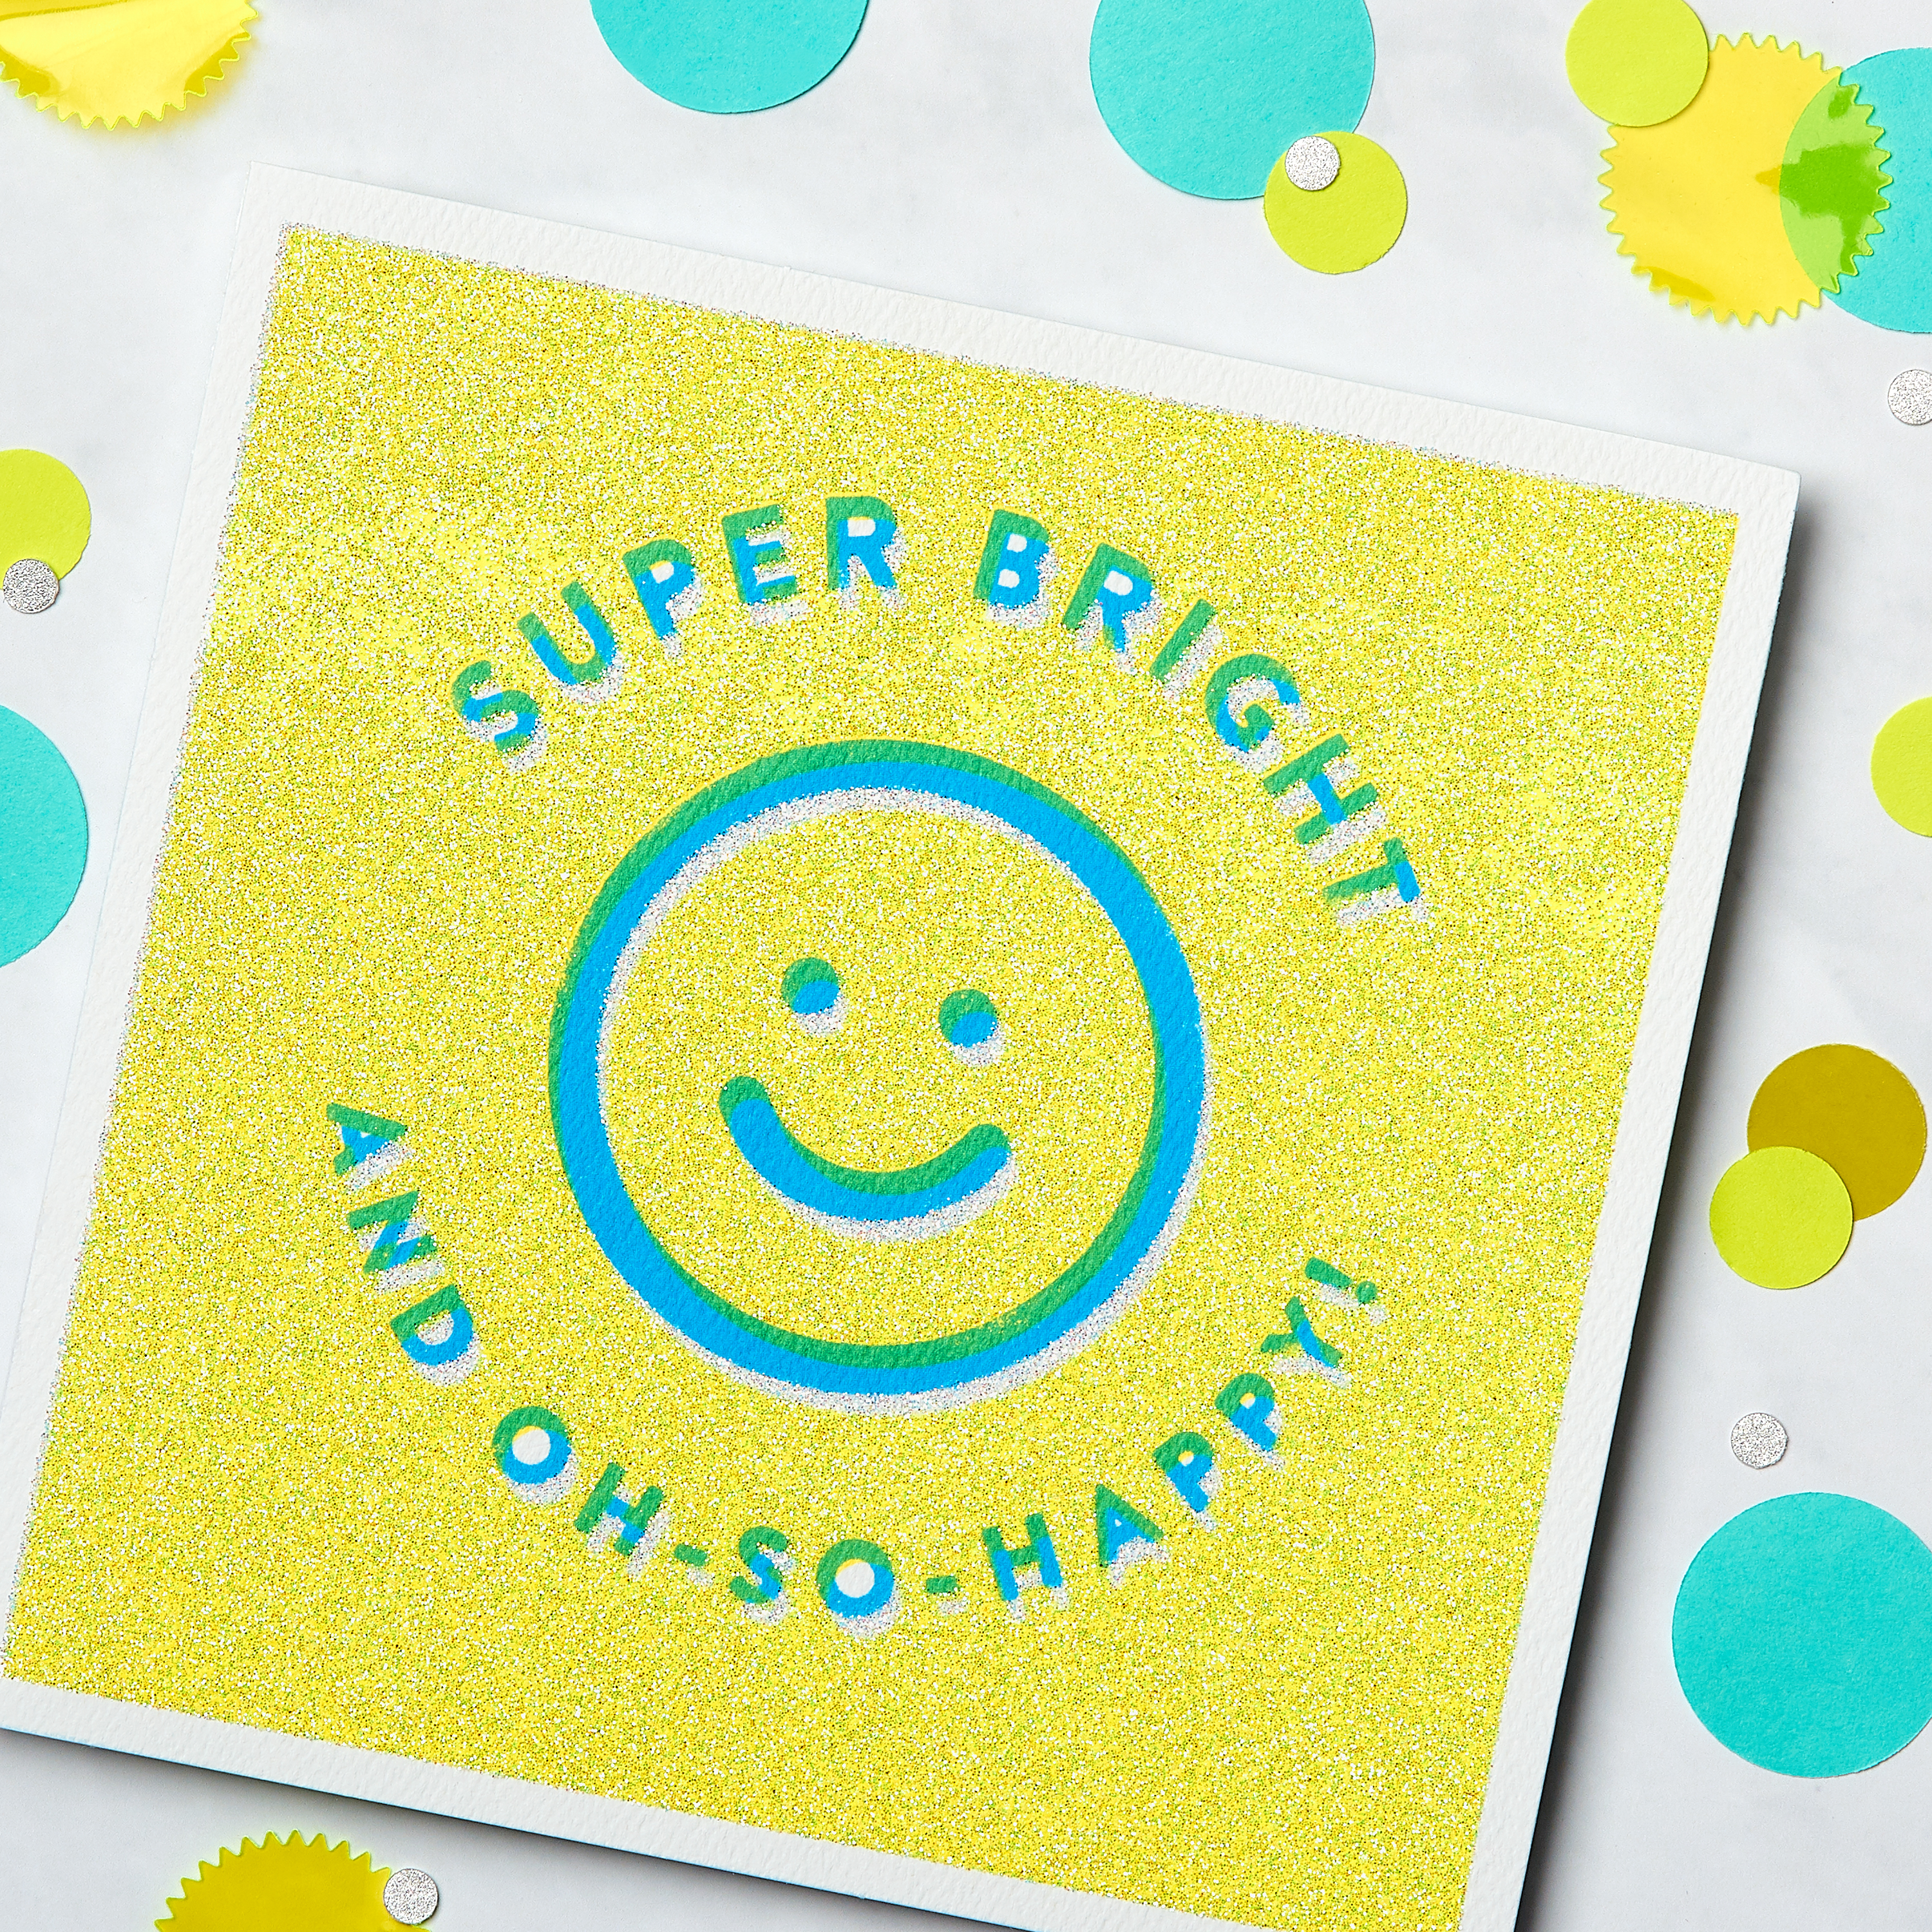 Super Bright Greeting Card for Kids - Birthday, Thinking of You, Encouragement, Friendship image